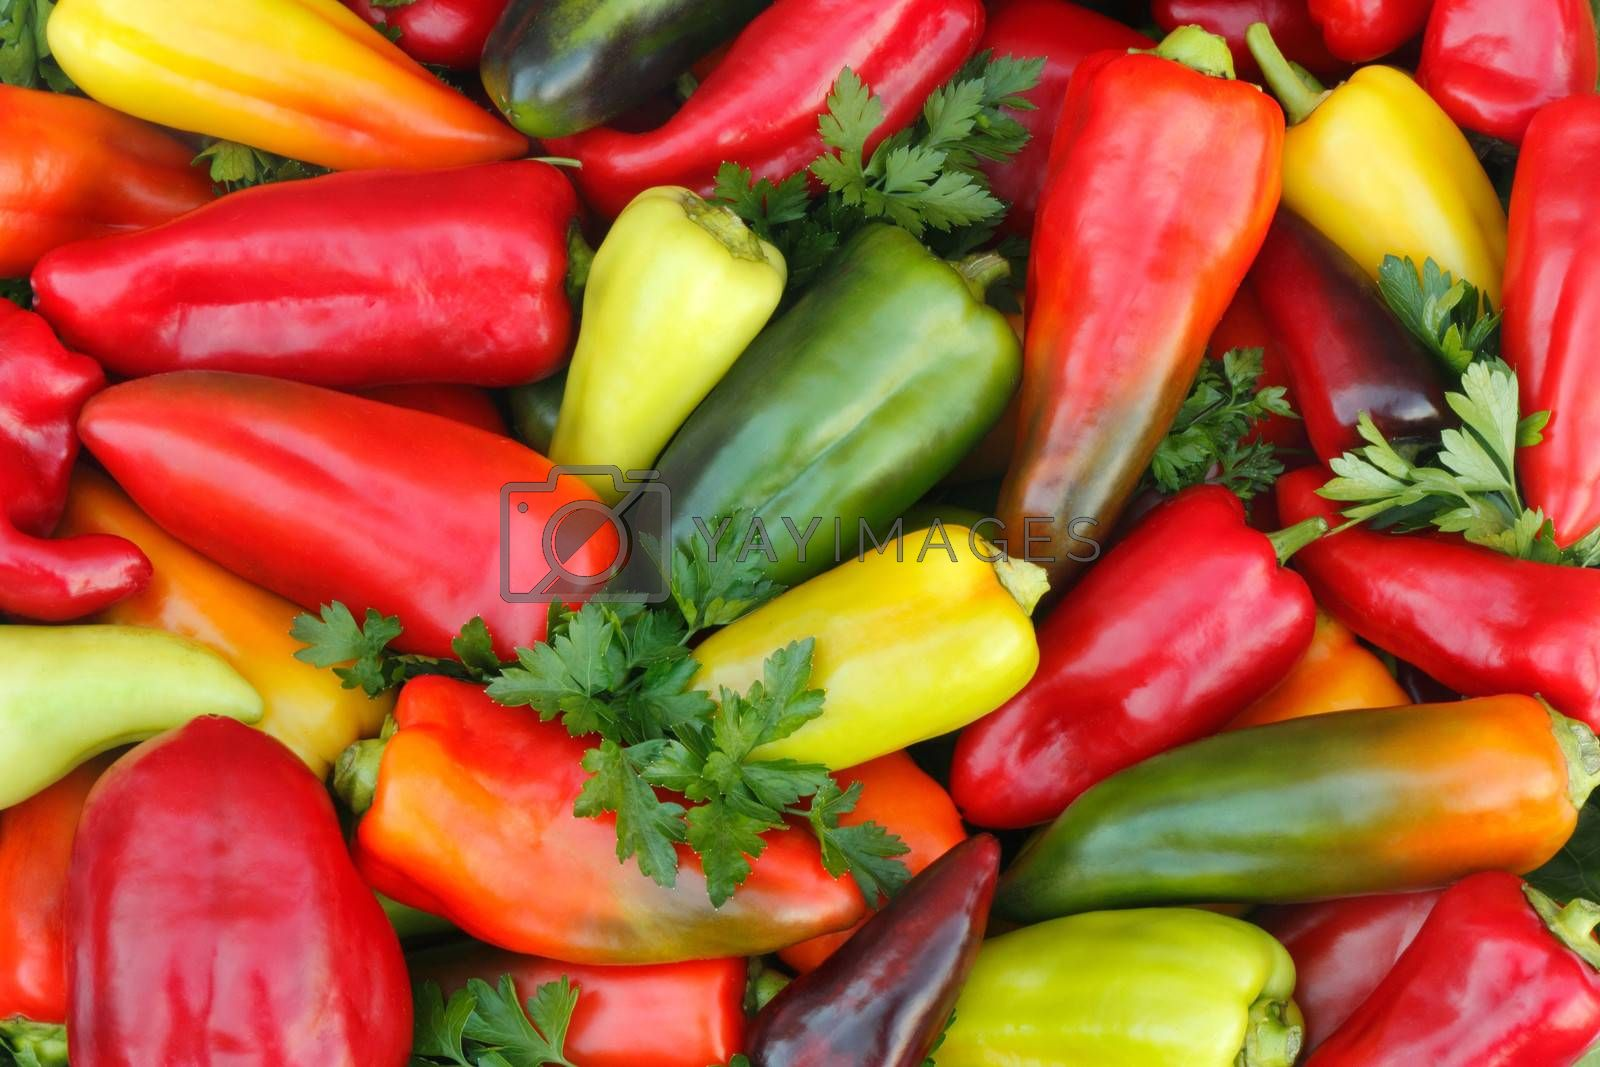 A large number of different varieties of pepper and painting together with parsley leaves